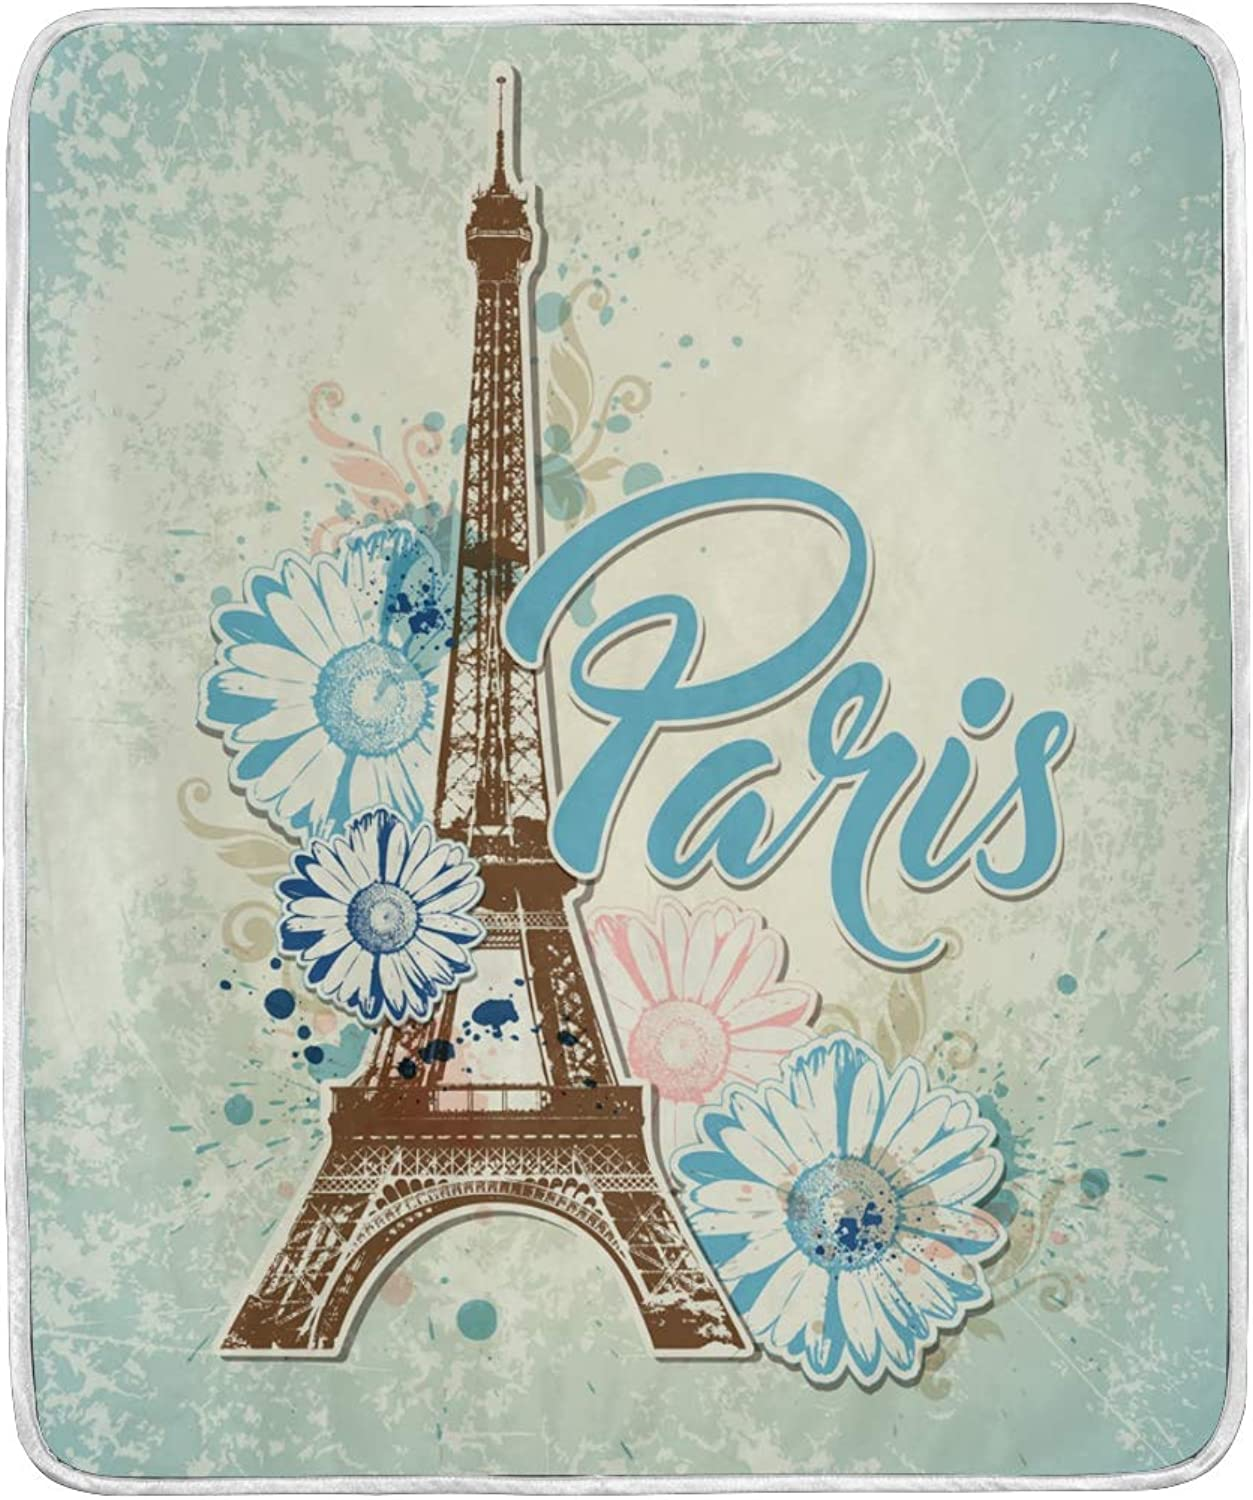 Vintage Paris Eiffel Tower Floral Flowers Throw Blanket Soft Nap Couch Bed Blankets Kid Boy Girl Women Men 50x60 inch